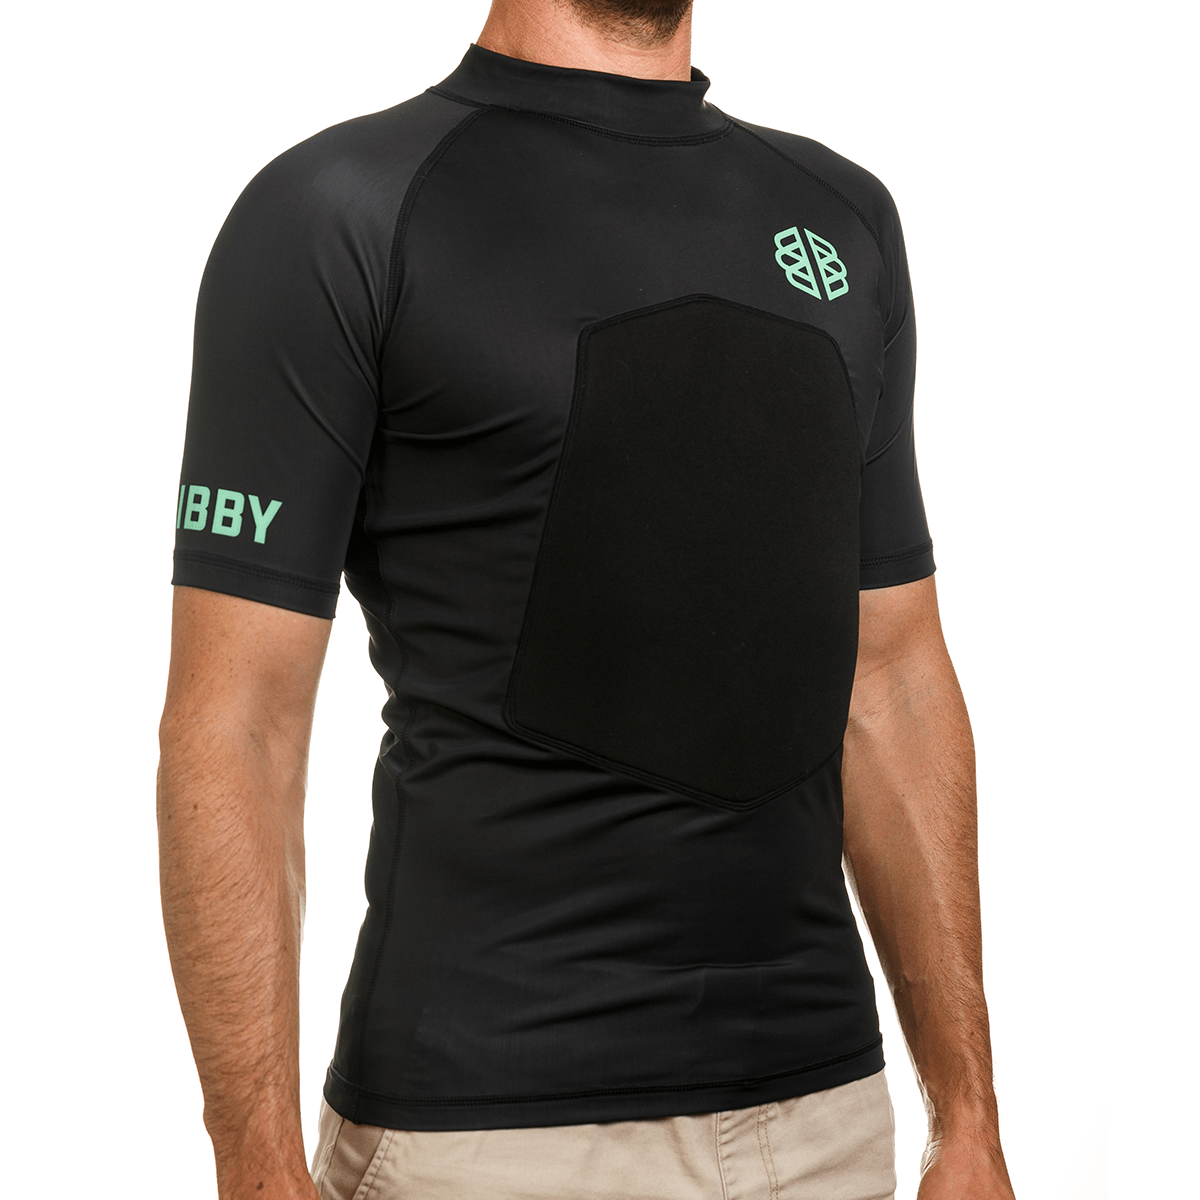 Ribby - Short Sleeve Black padded rash guard